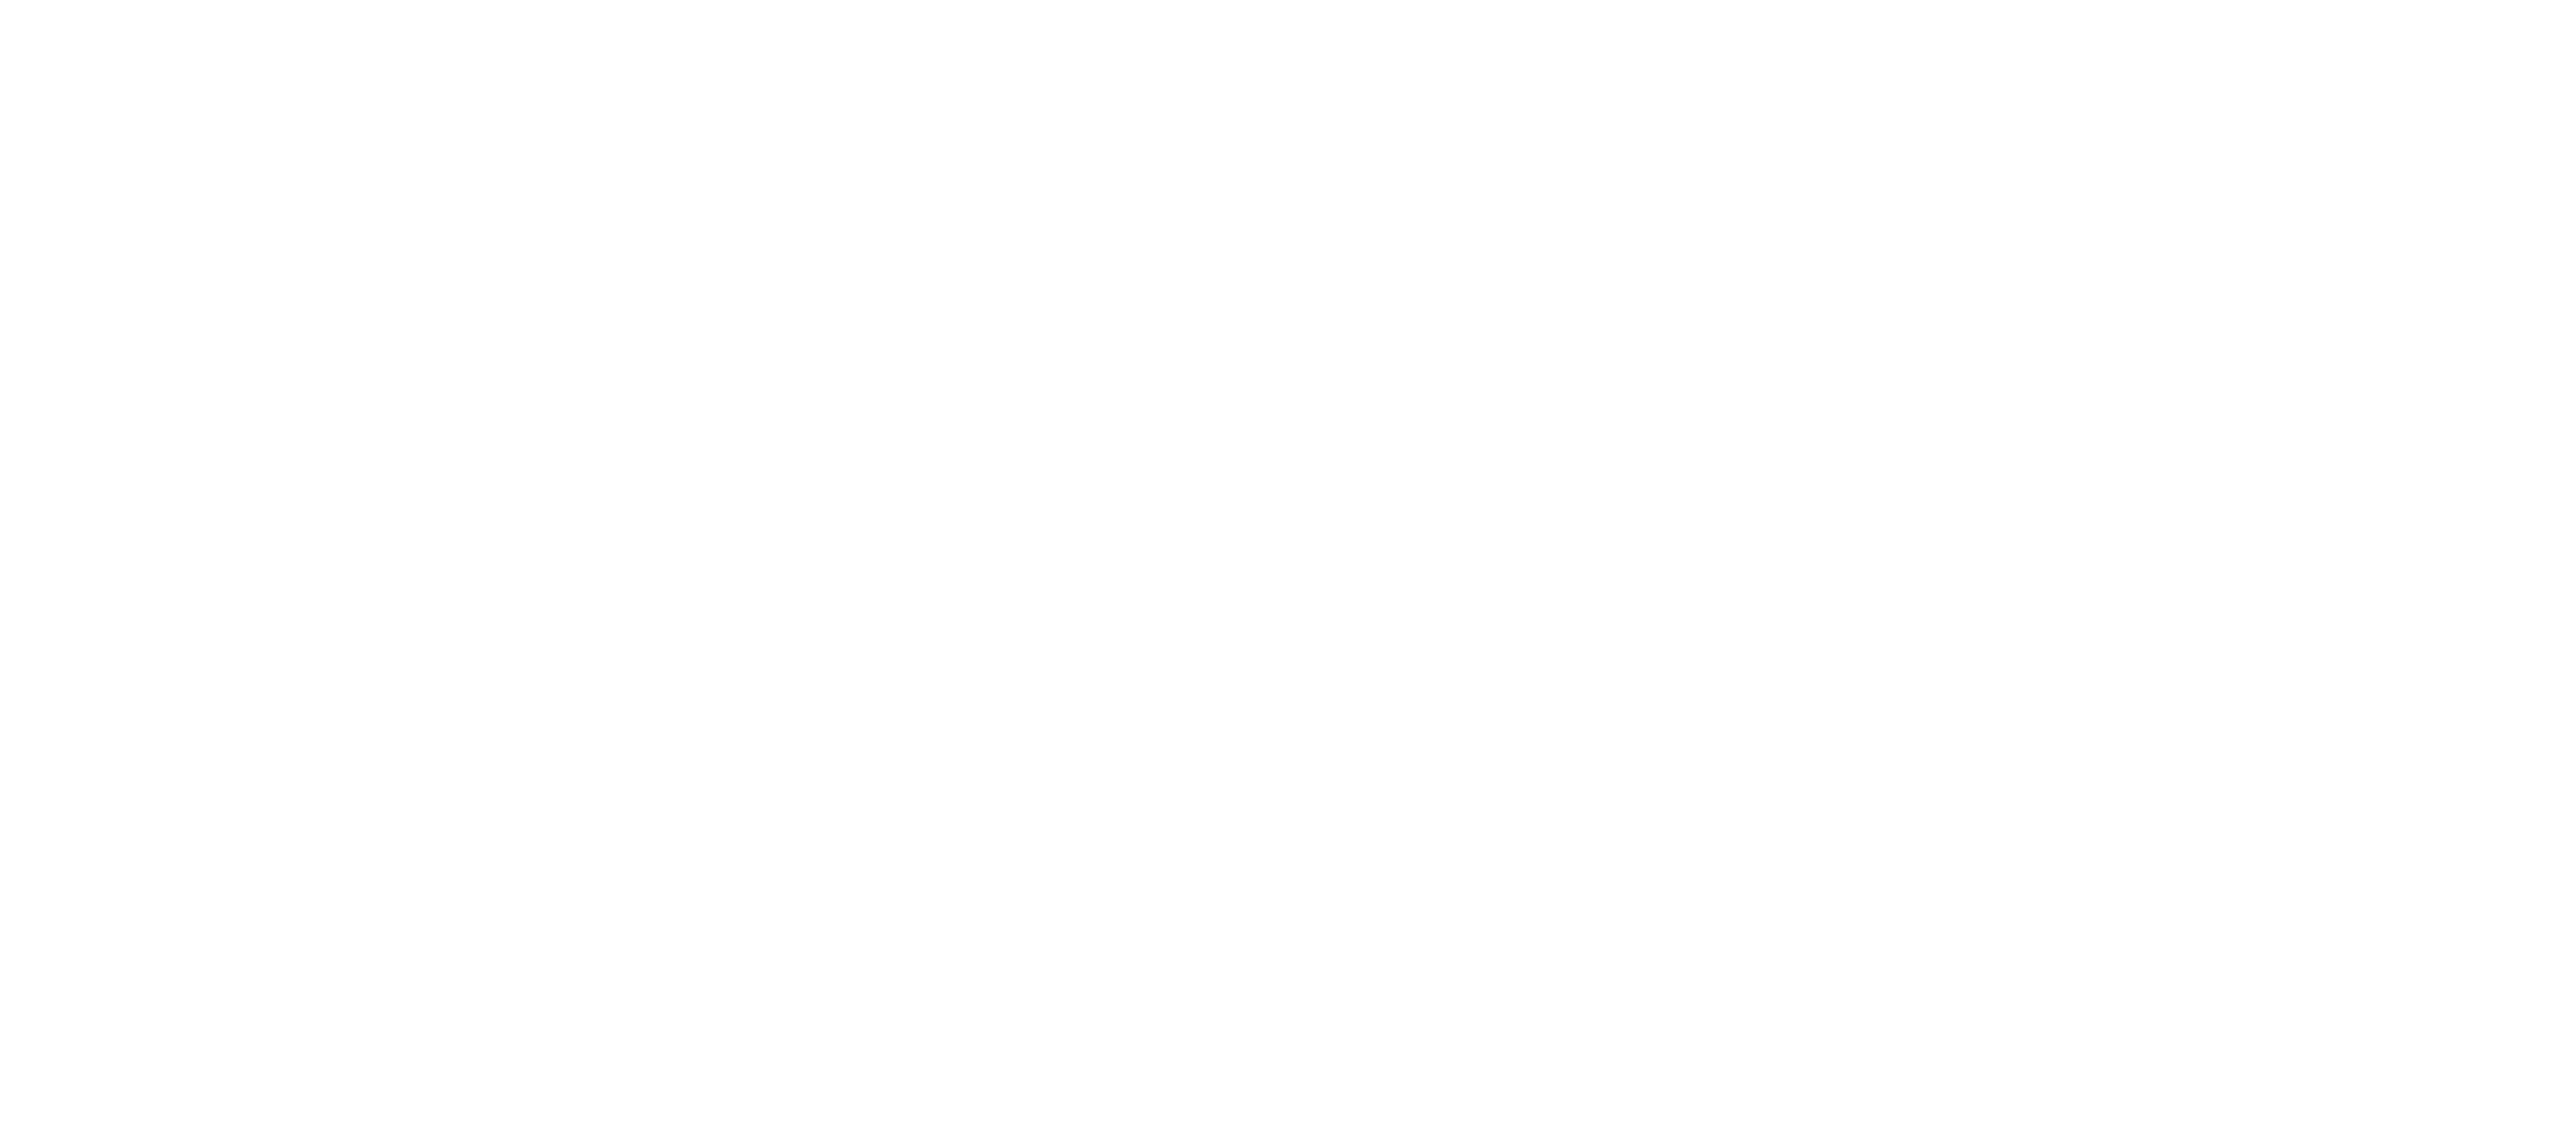 Uniglobal Homes Realty